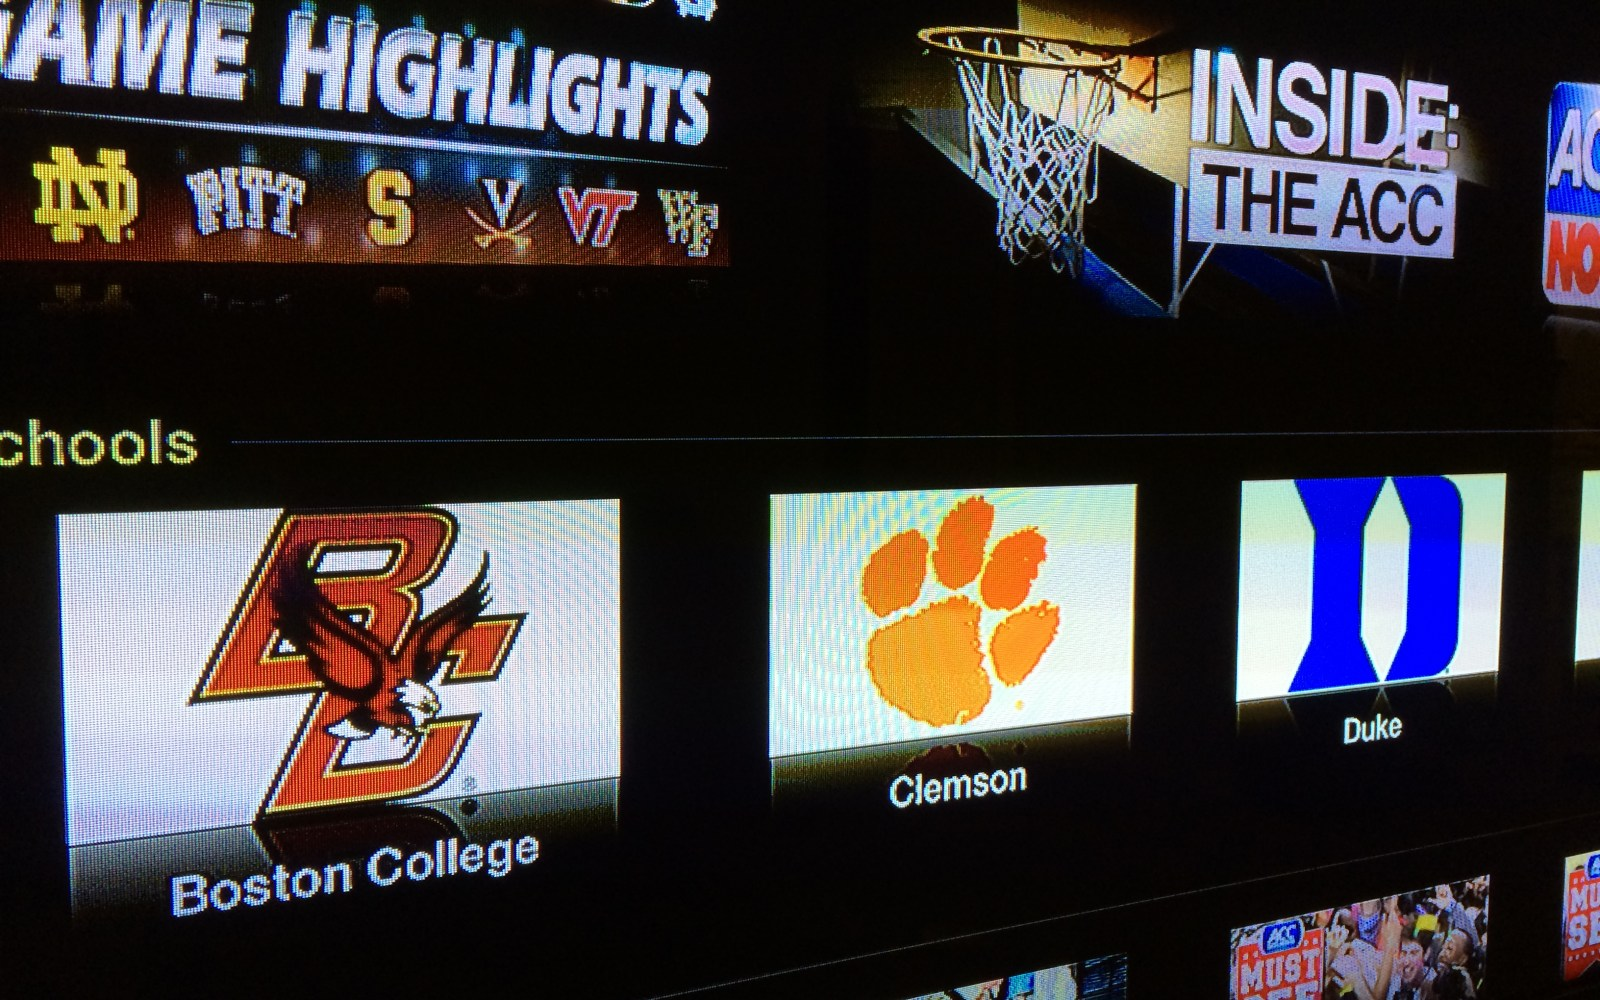 ACC Sports joins Apple TV channel lineup just in time for March Madness